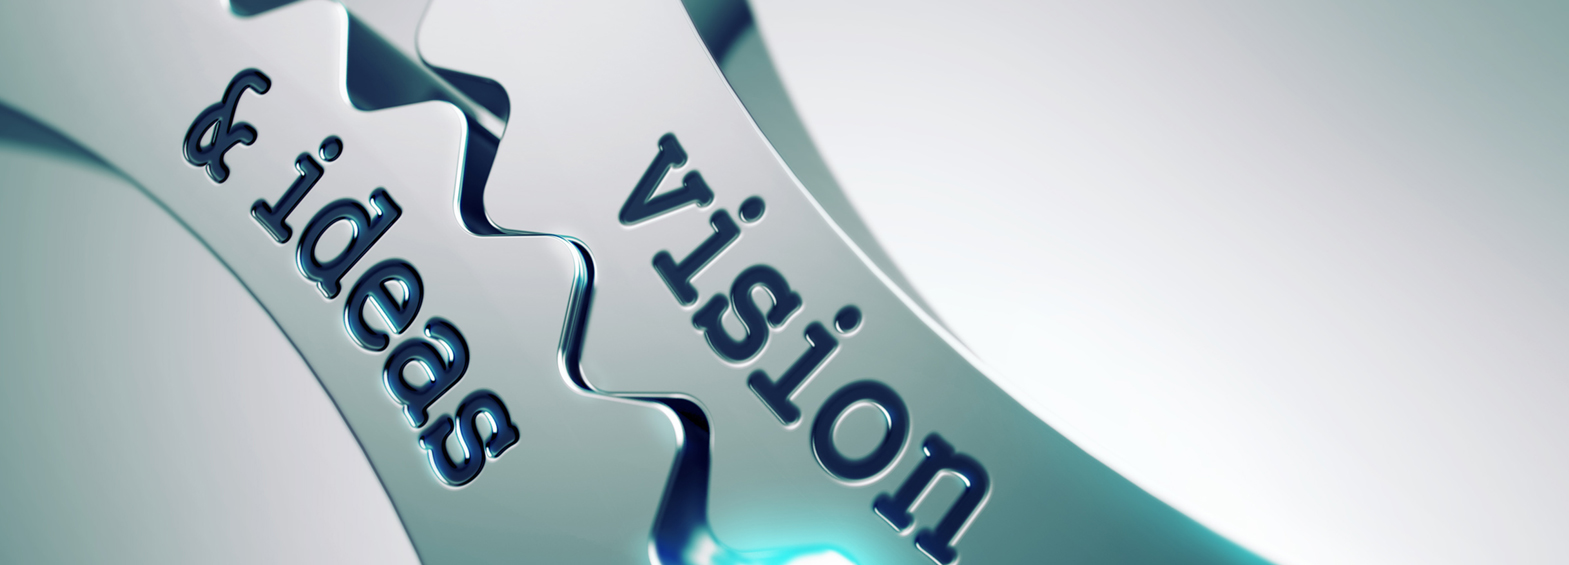 concept of vision in an organisation By vision in strategic management we mean the projection of a future status of an organization where the organization intends to arrive in order to concretize its reason d'etre, its values.